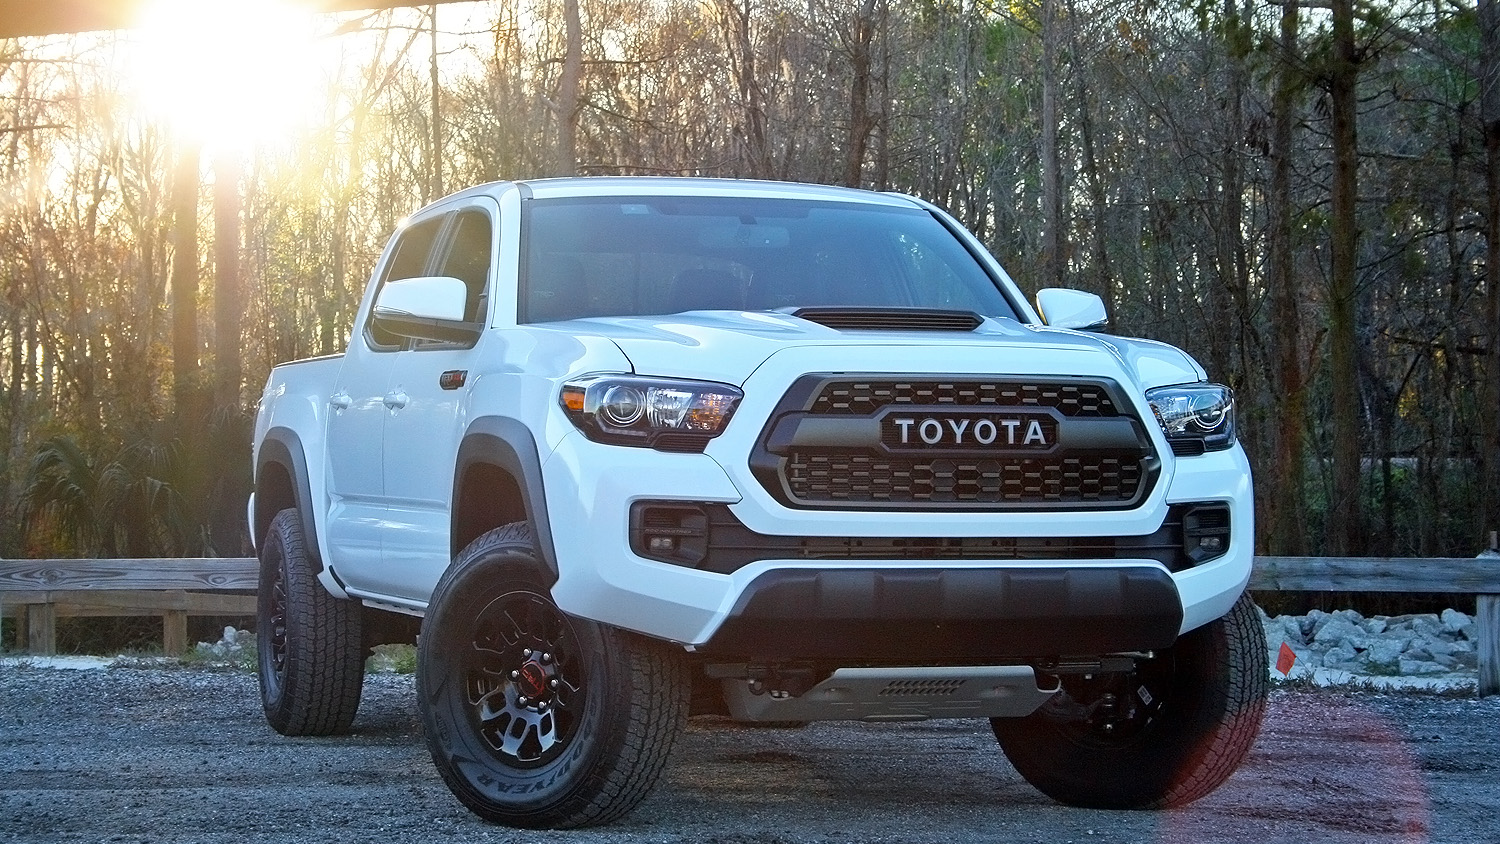 2017 Toyota Tacoma Lifted >> 2017 Toyota Tacoma TRD Pro – Driven | Top Speed